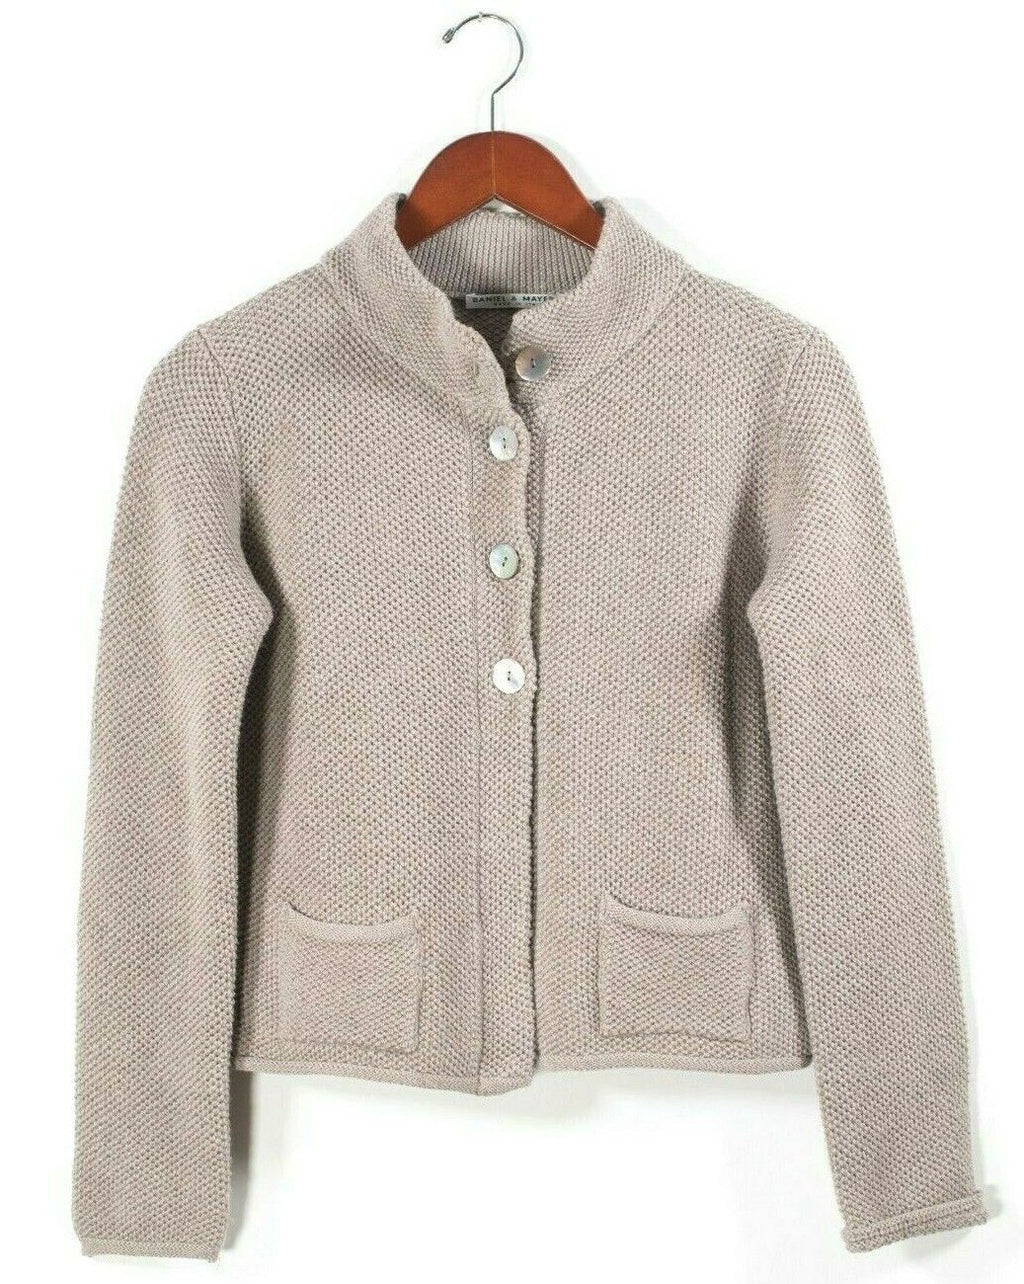 Daniel & Meyer Womens Small Brown Cardigan Sweater Knit Button Pocket Blazer